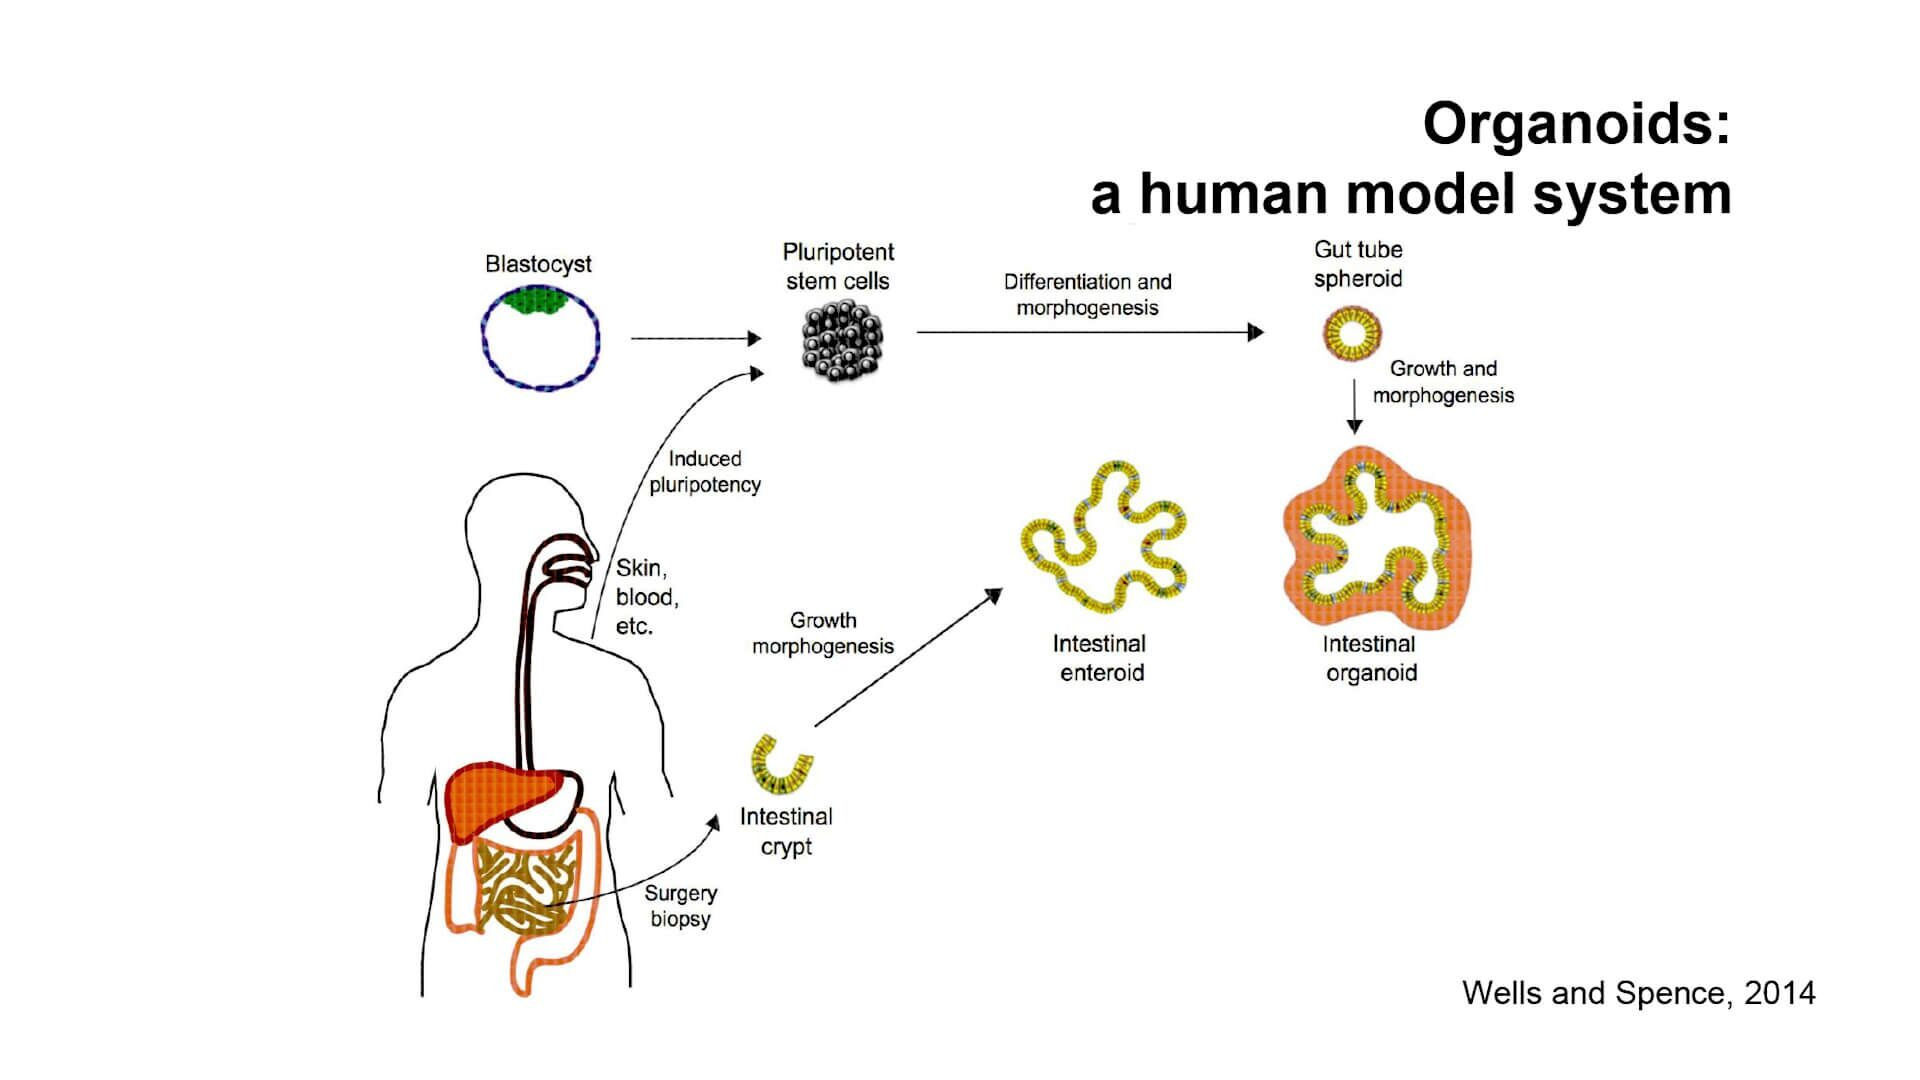 GI Tract Organoids: Using Advanced Tissue Models to Interrogate Absorption and Regulation